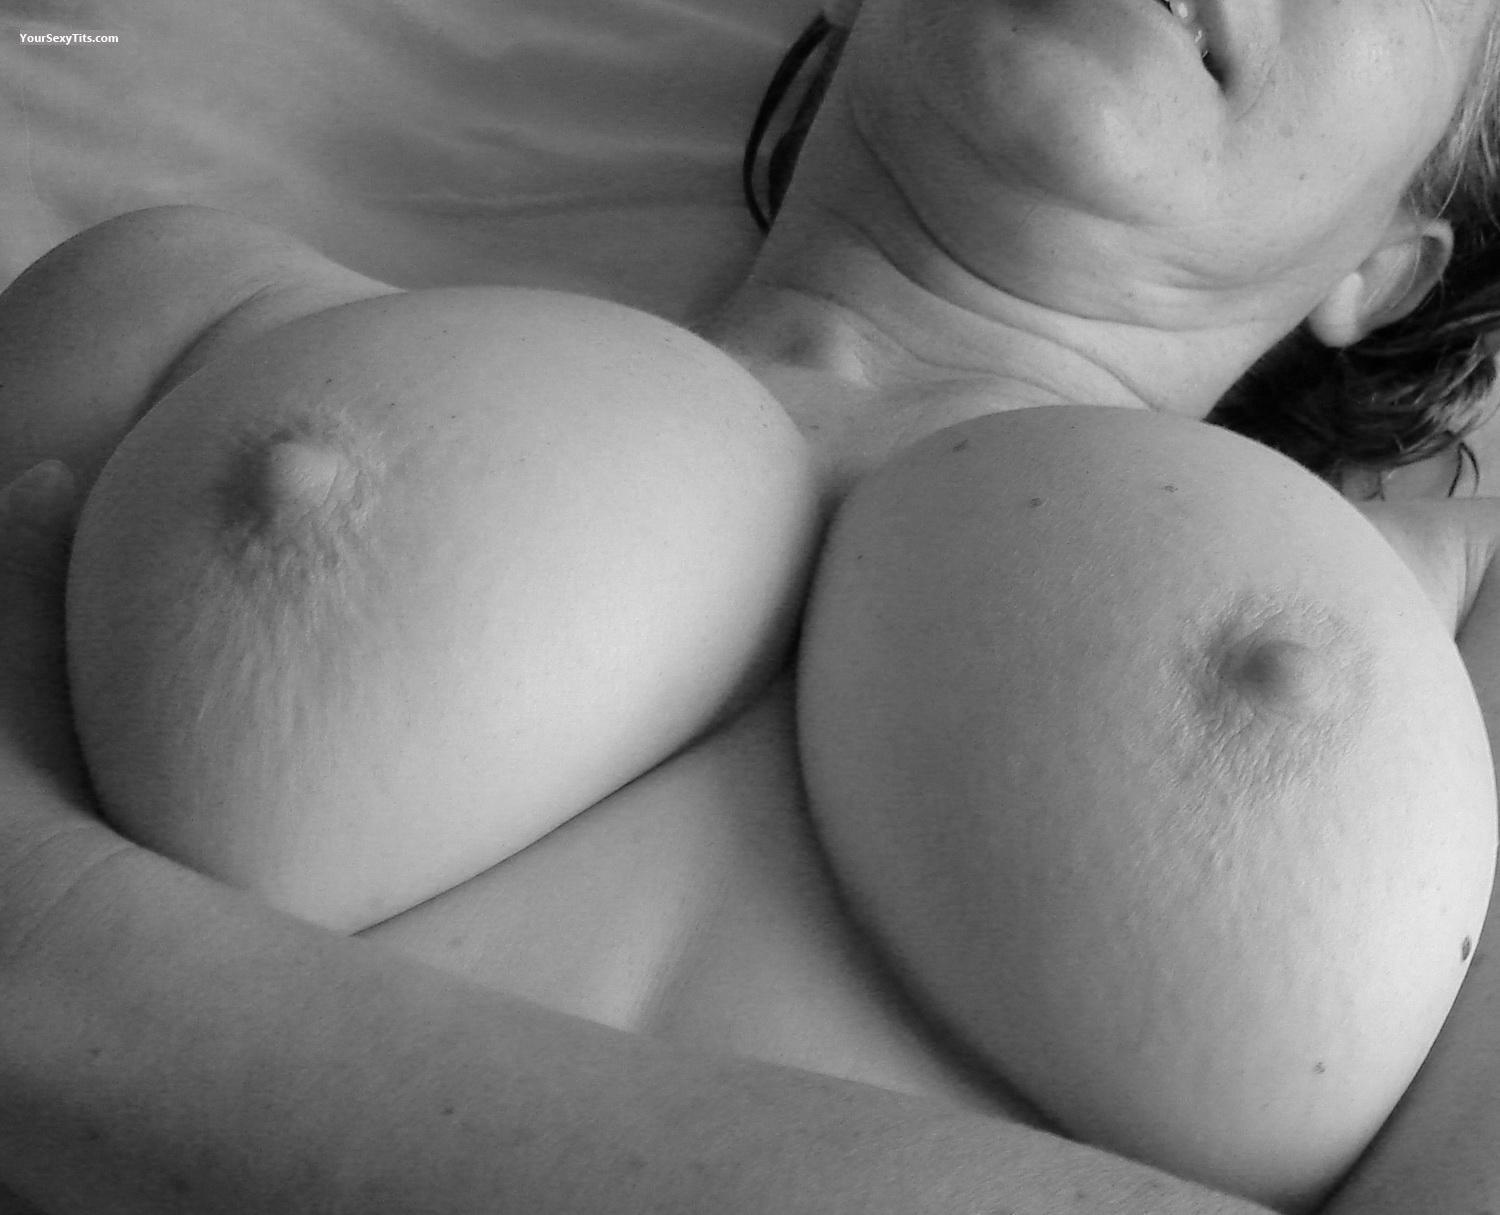 Tit Flash: Big Tits - Cita from United States